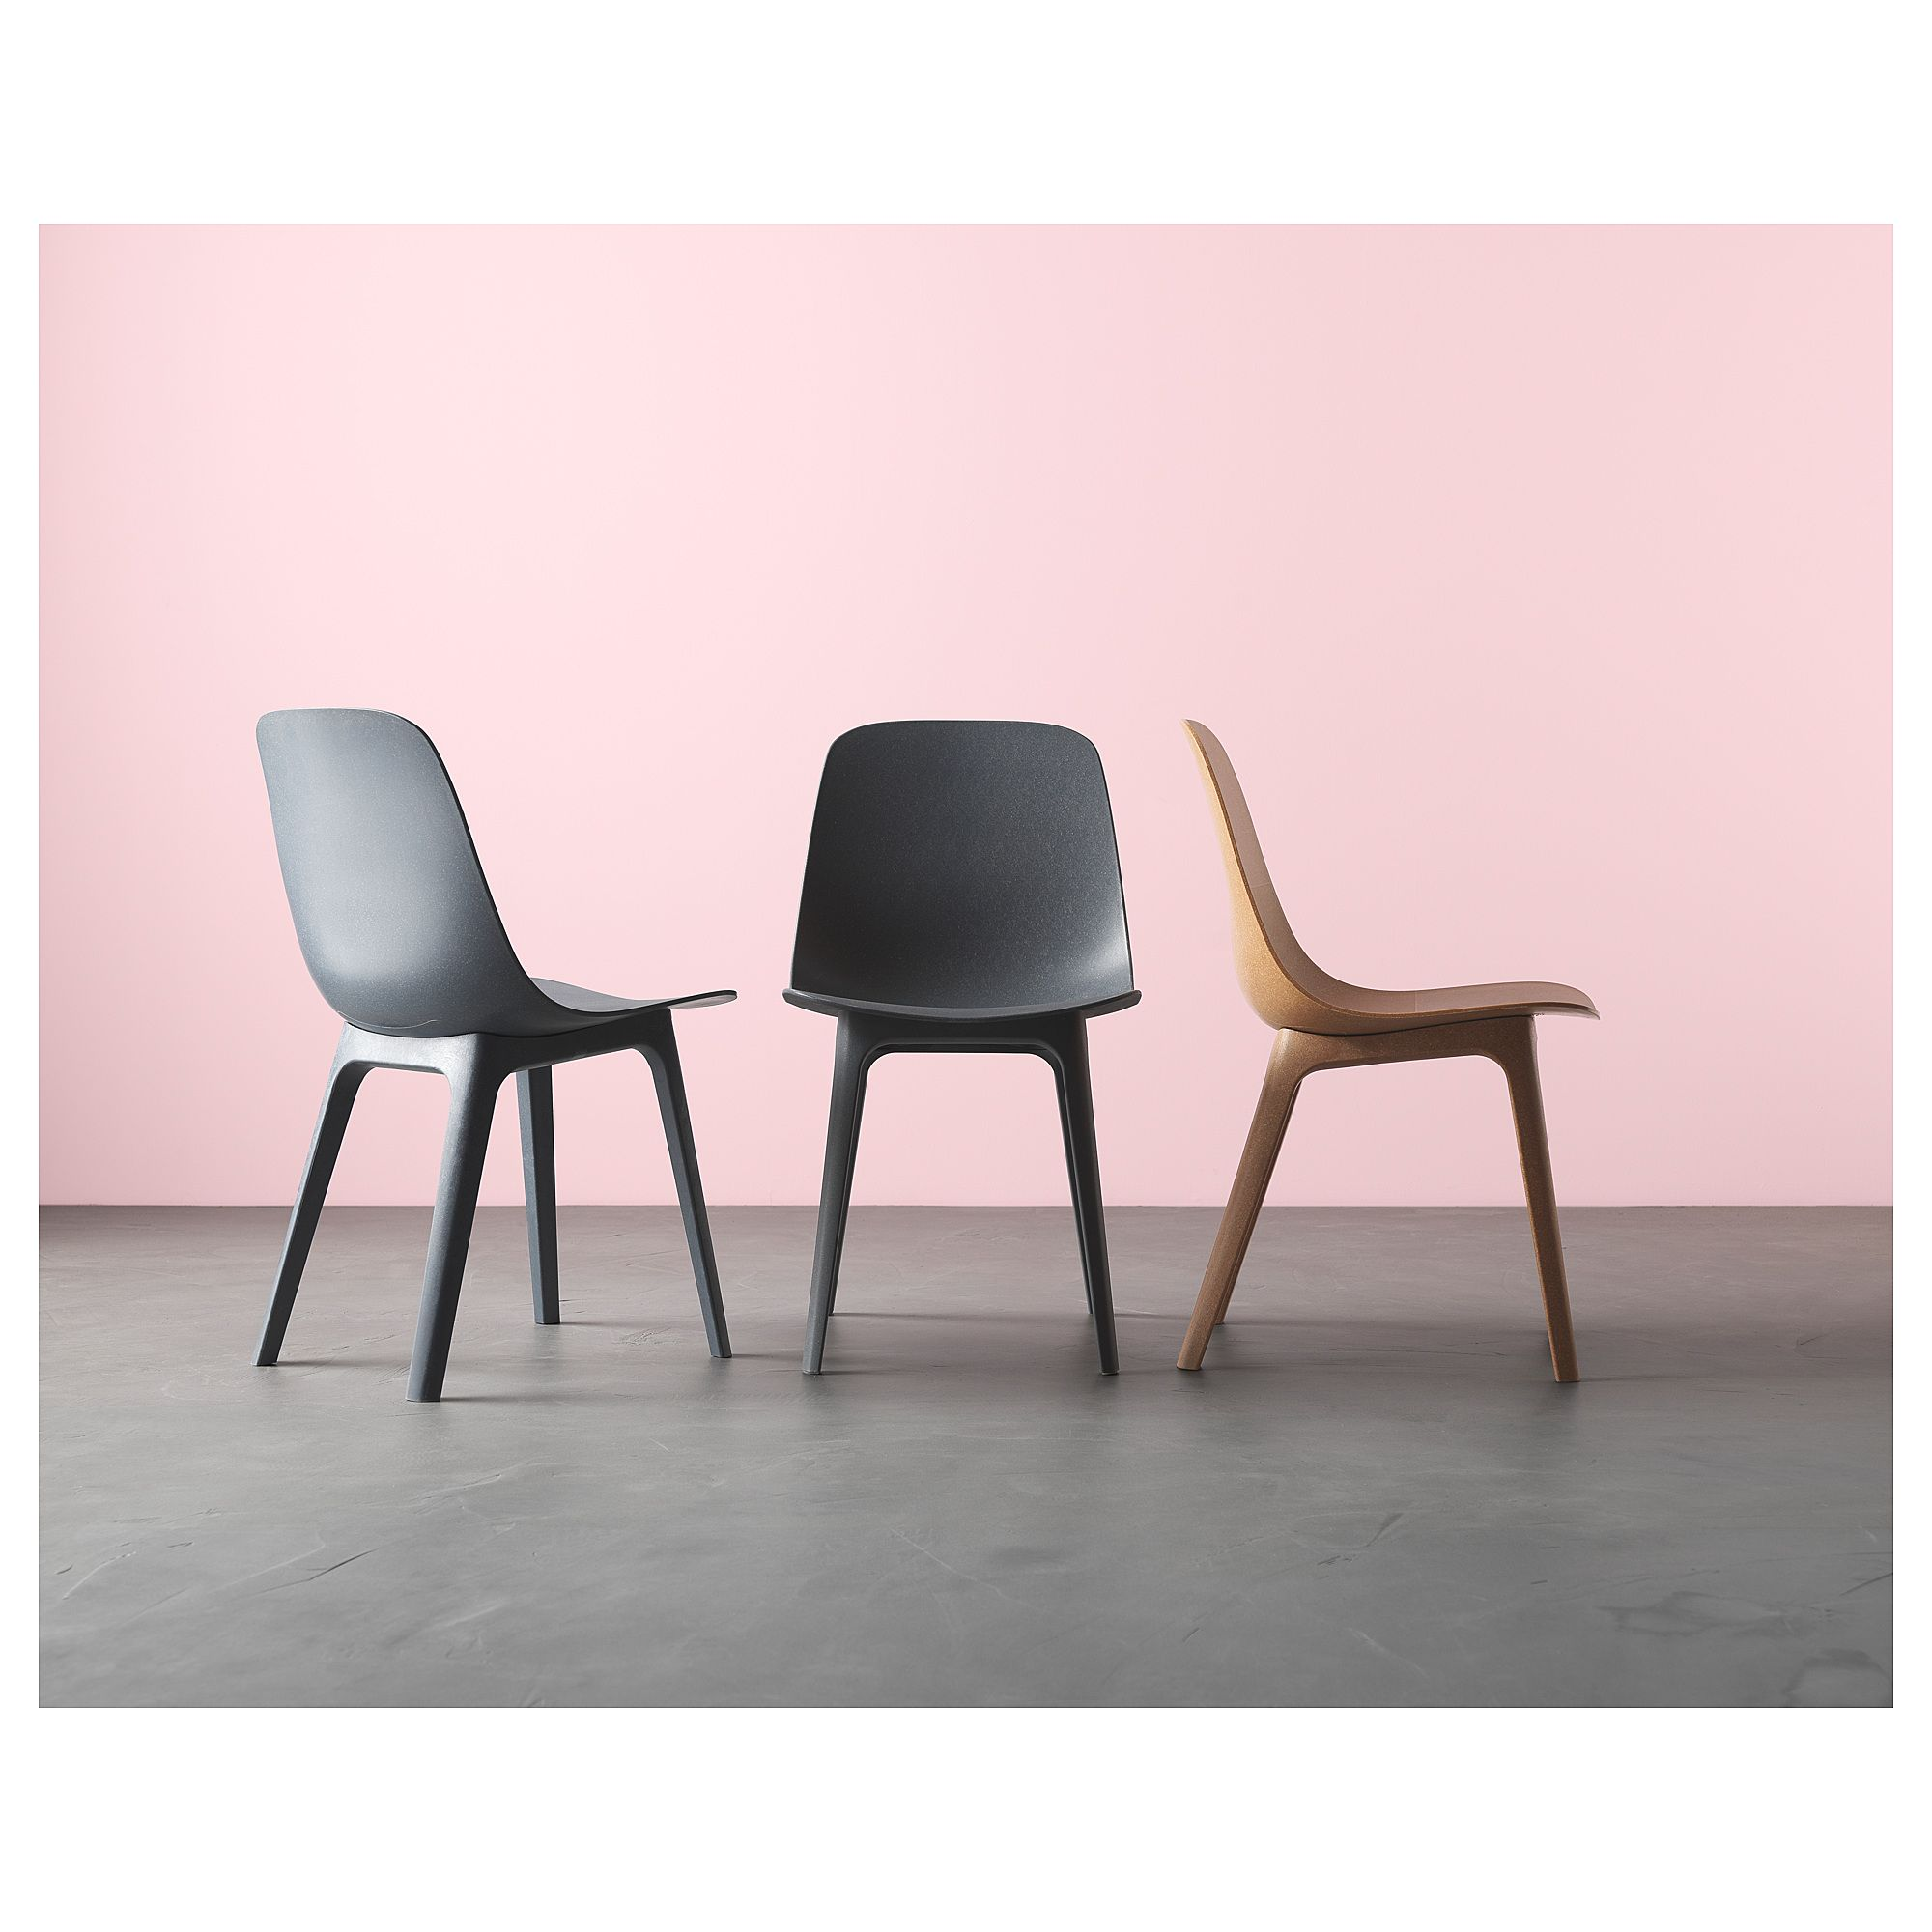 IKEA ODGER Chair Blue fortable to sit on thanks to the bowl shaped seat and rounded shape of the backrest